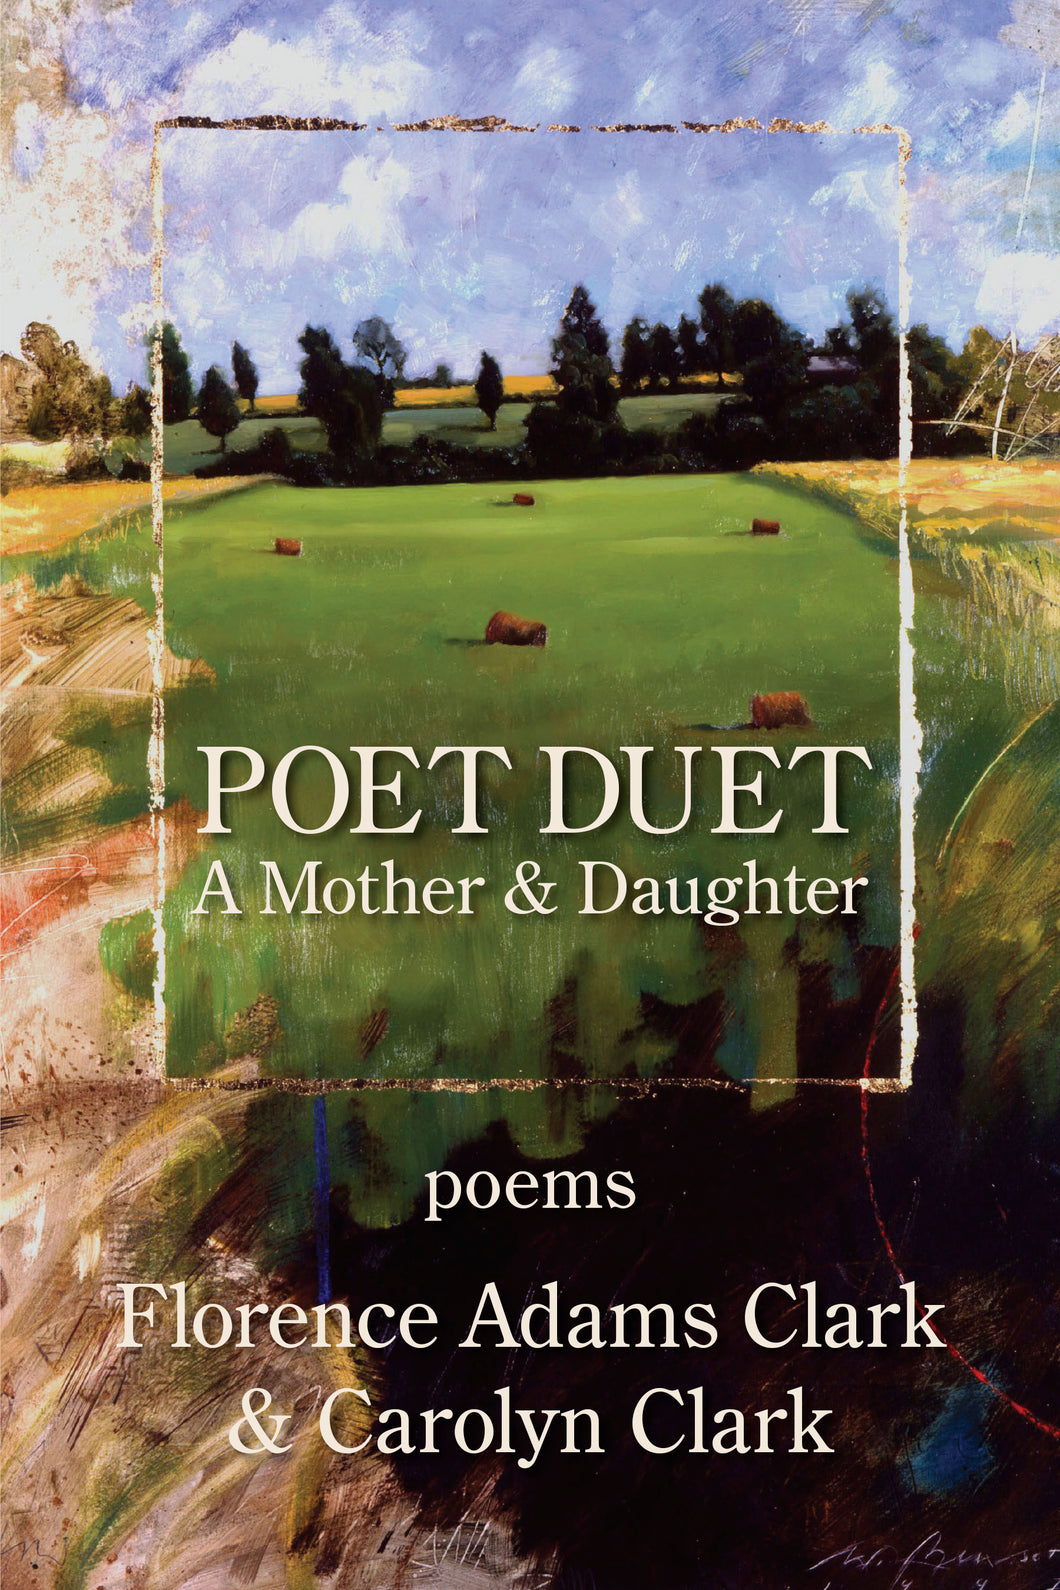 Poet Duet: A Mother & Daughter